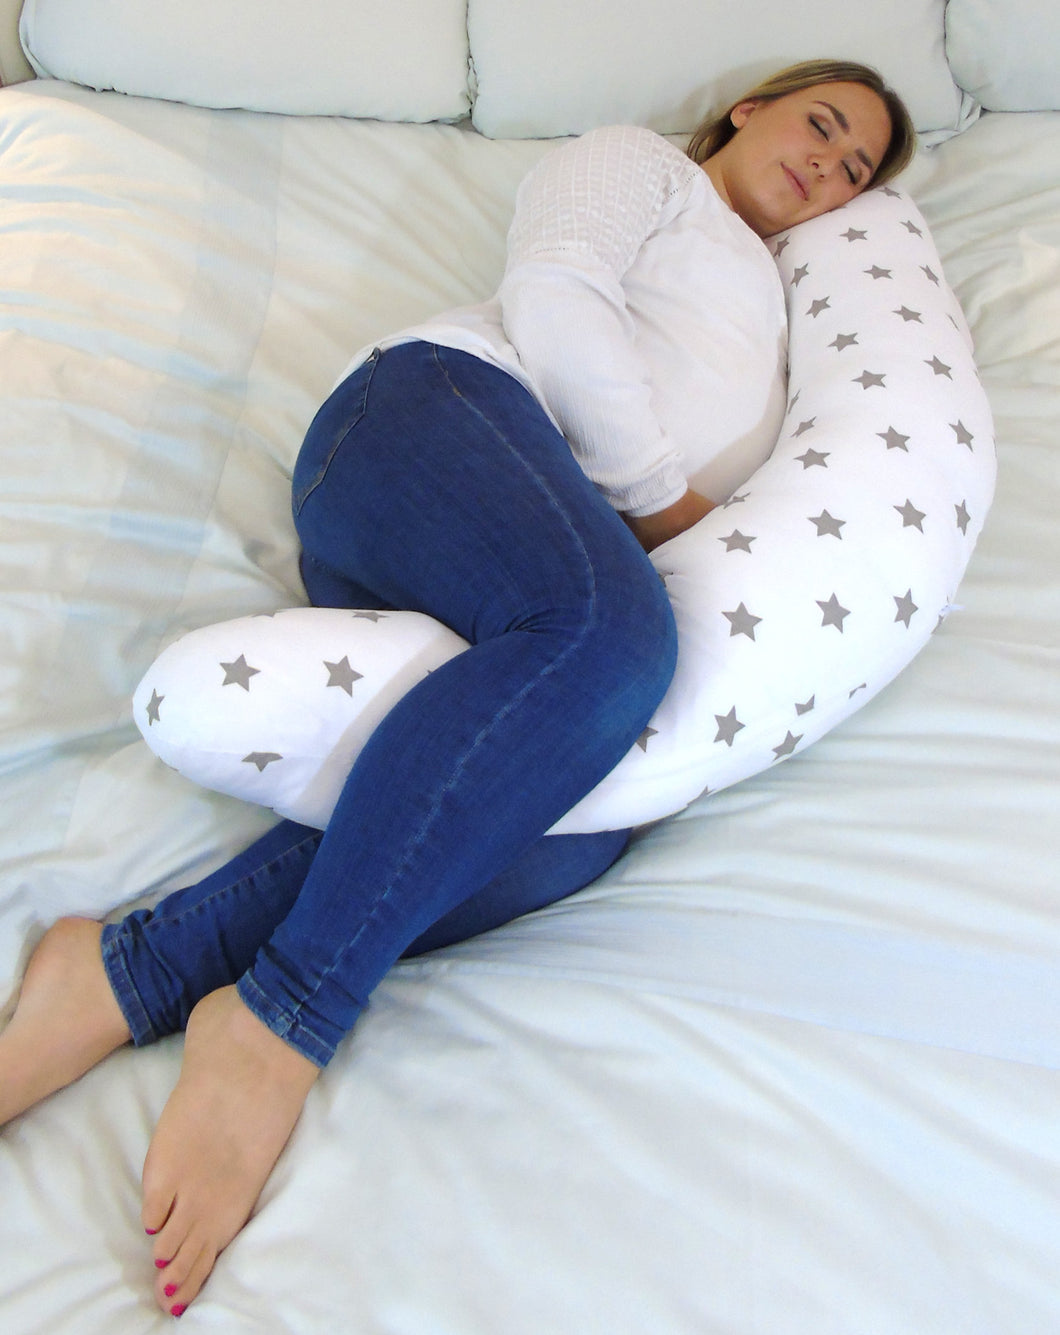 Sleep Widgey Plus Pregnancy and Sleep Pillow/Body Support - Silver Star Print